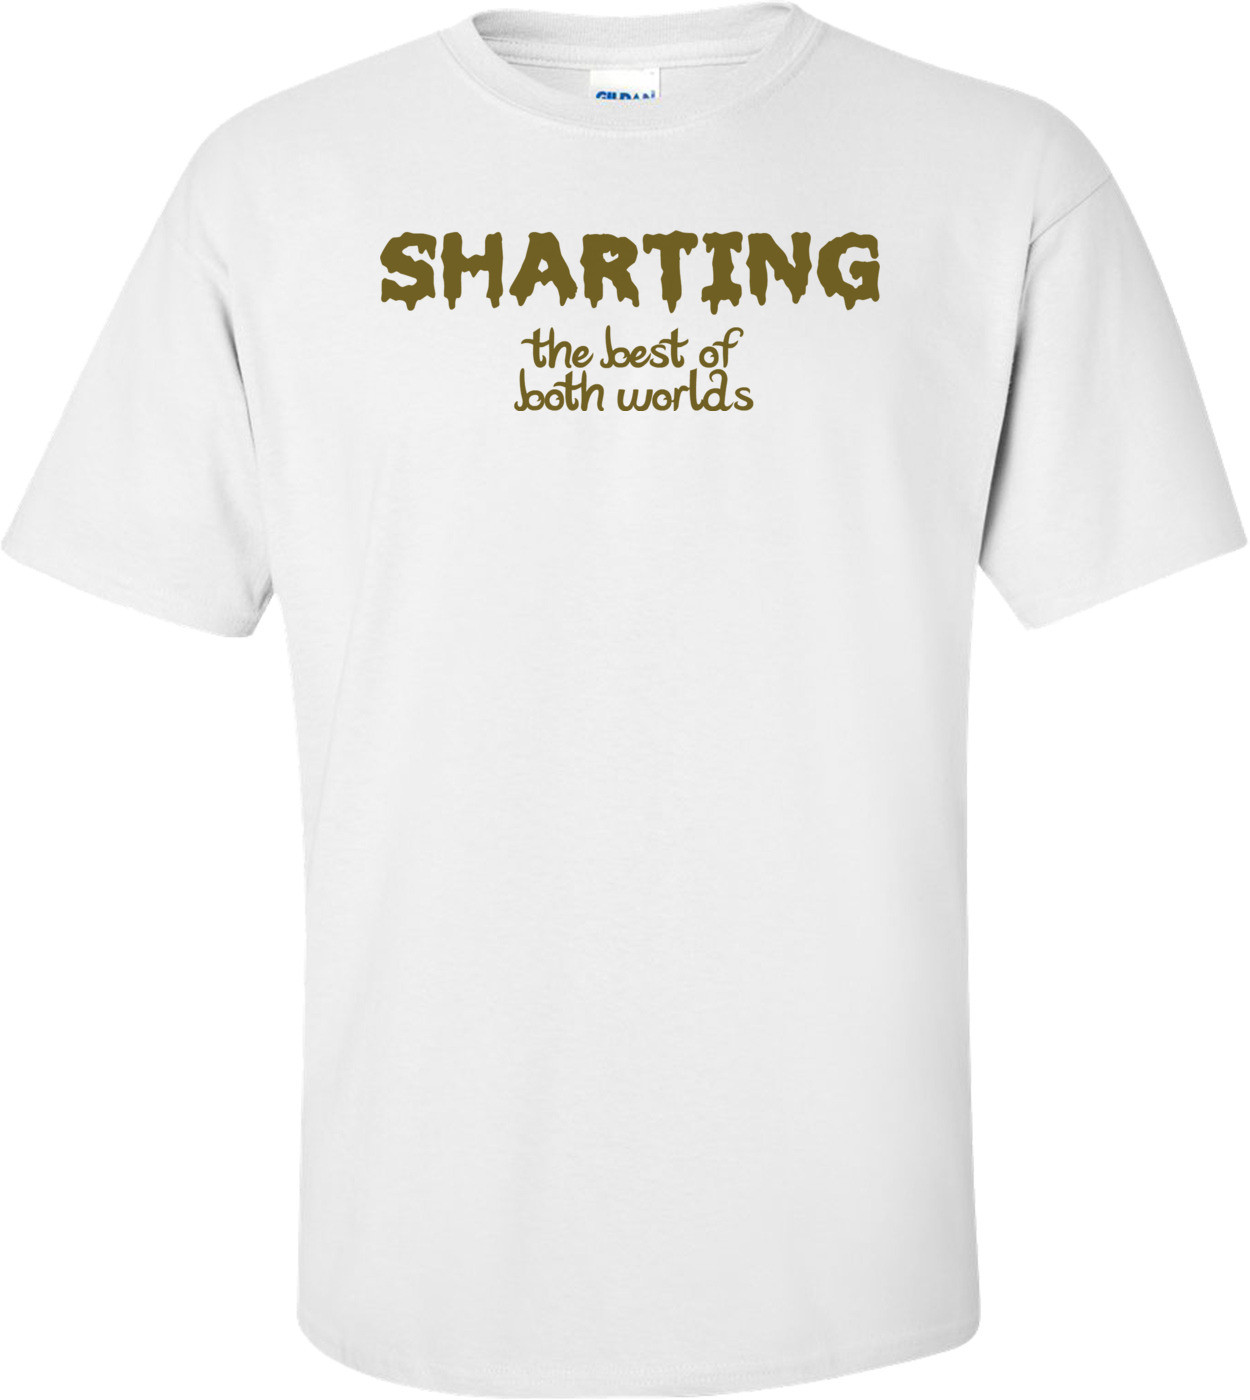 Sharting The Best Of Both Worlds T-shirt